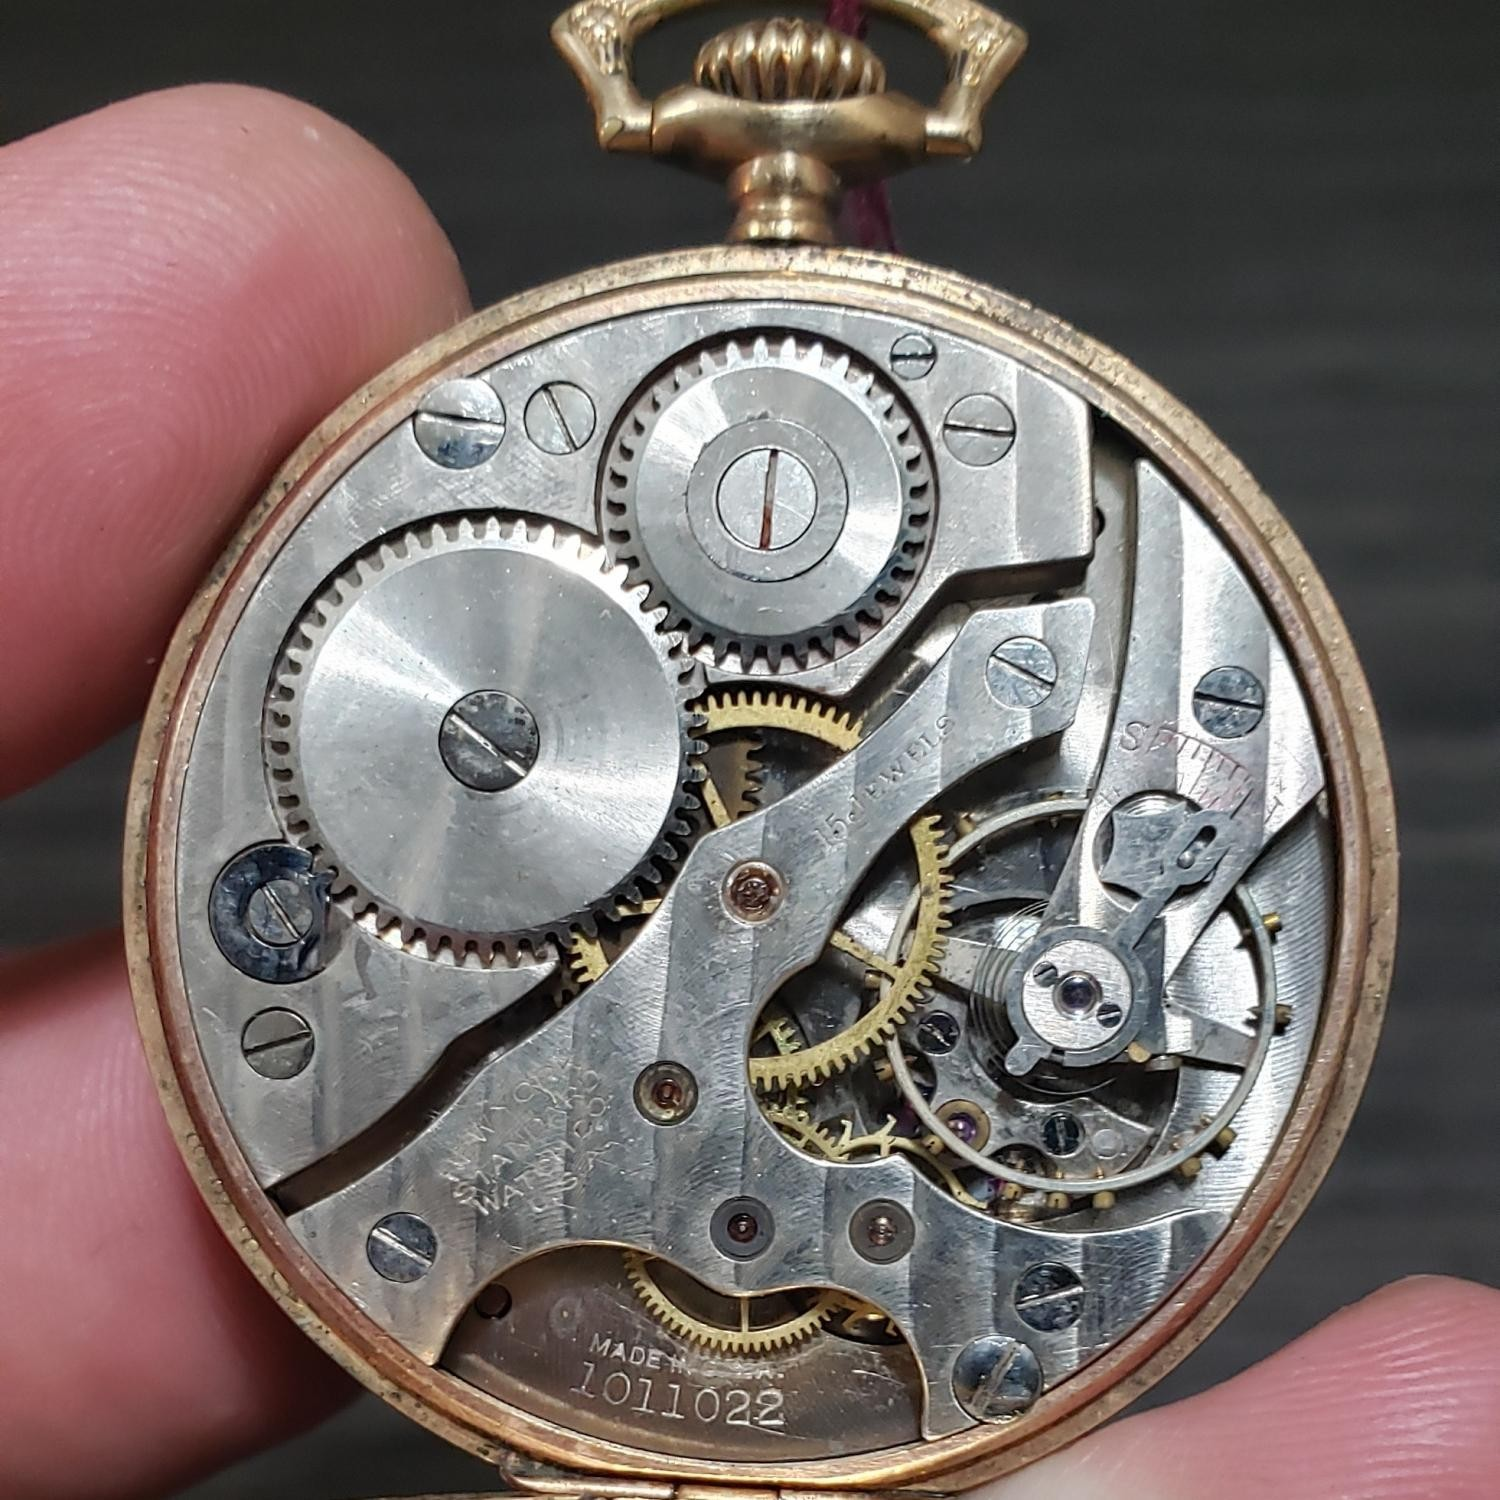 Image of New York Standard Watch Co. 1553 #1011022 Movement